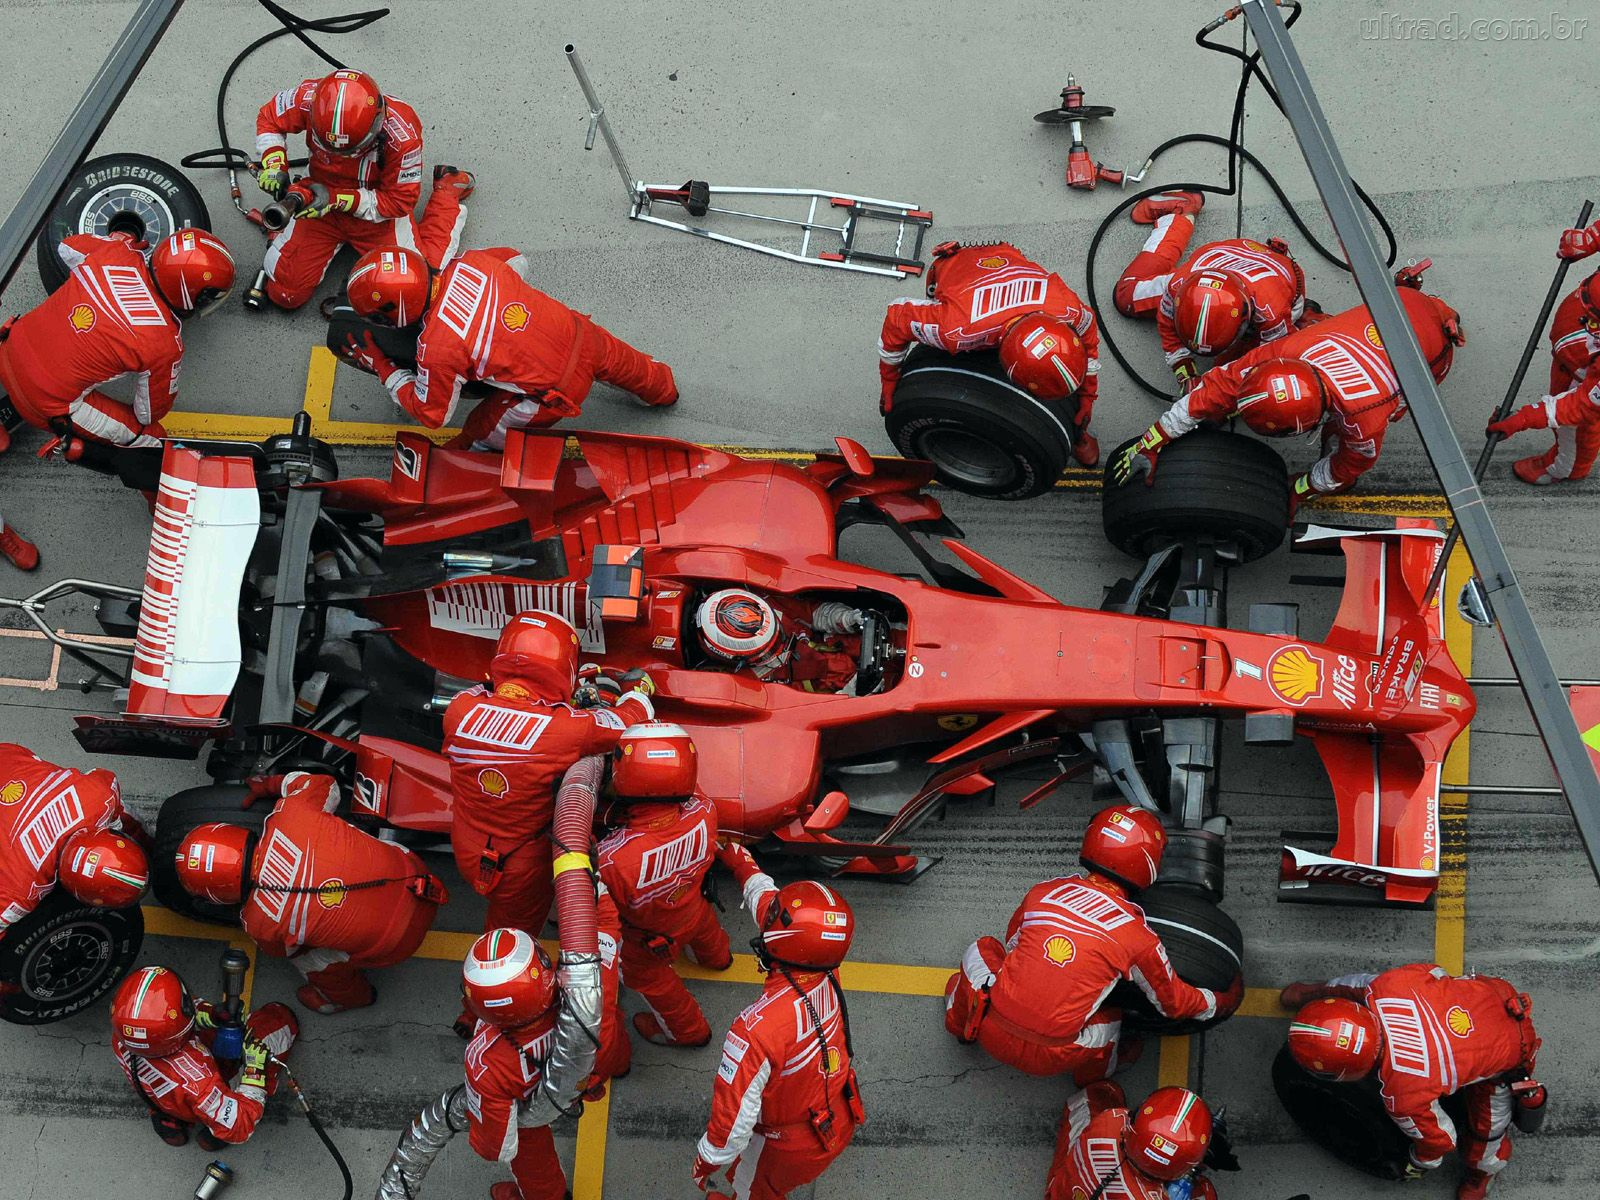 This Fascinating Video Compares Pit Stops From Formula 1, NASCAR and Indy Car Racing